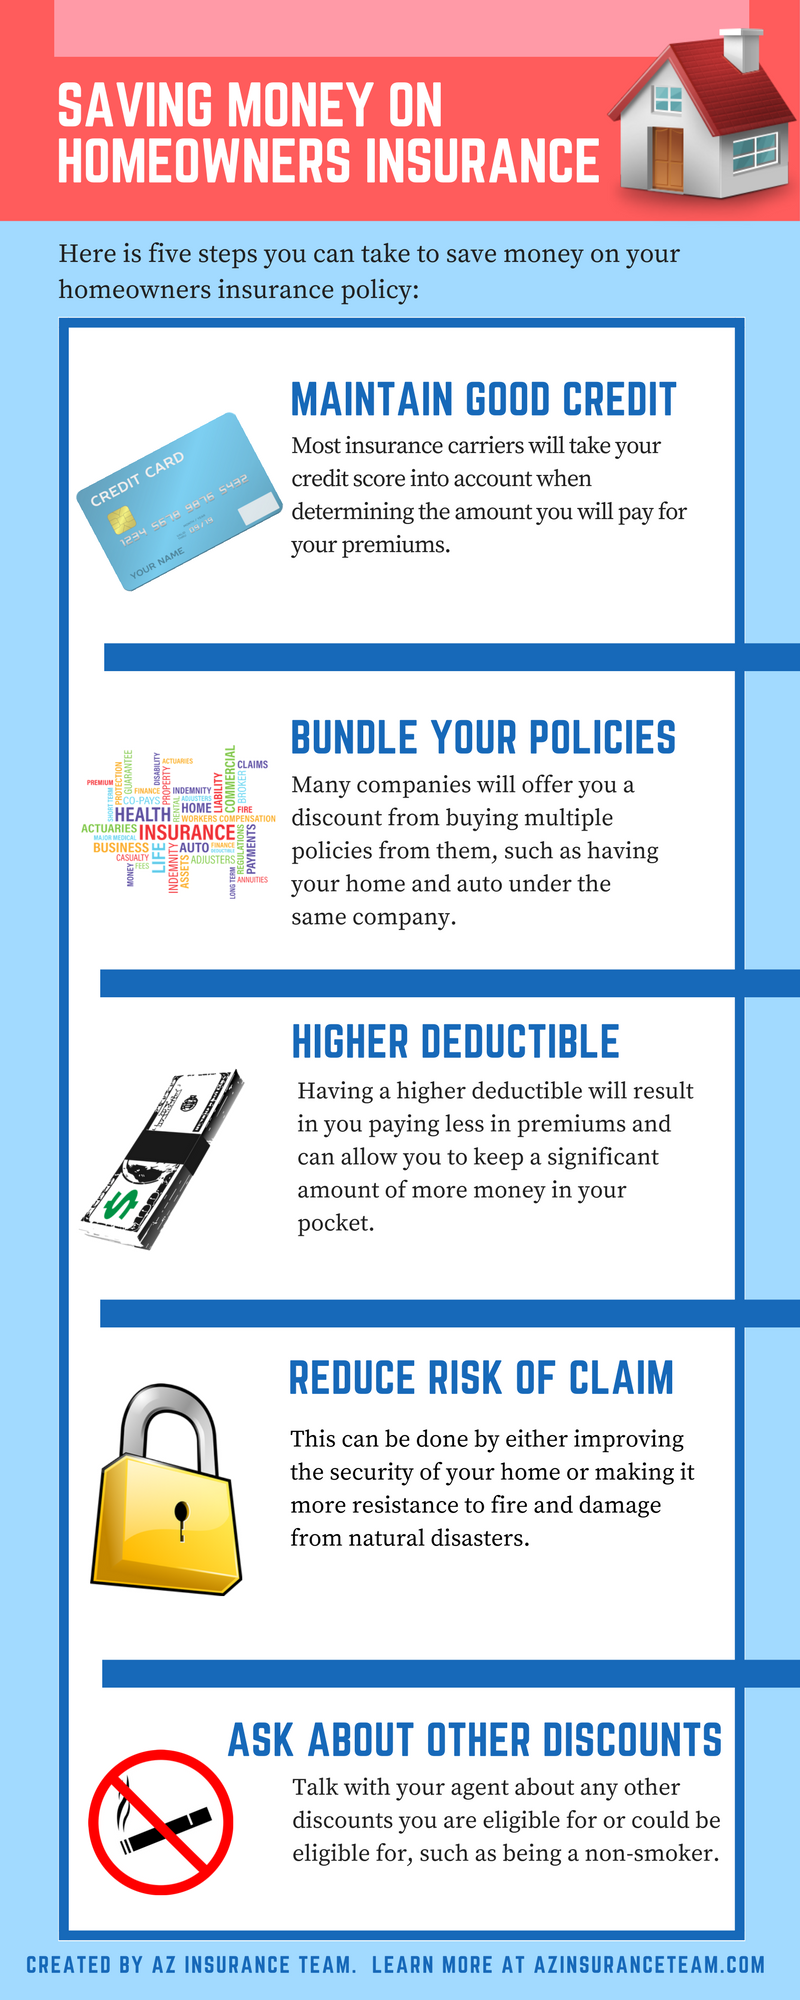 Check Out Our Blog Post And Infographic Explain Several Ways To